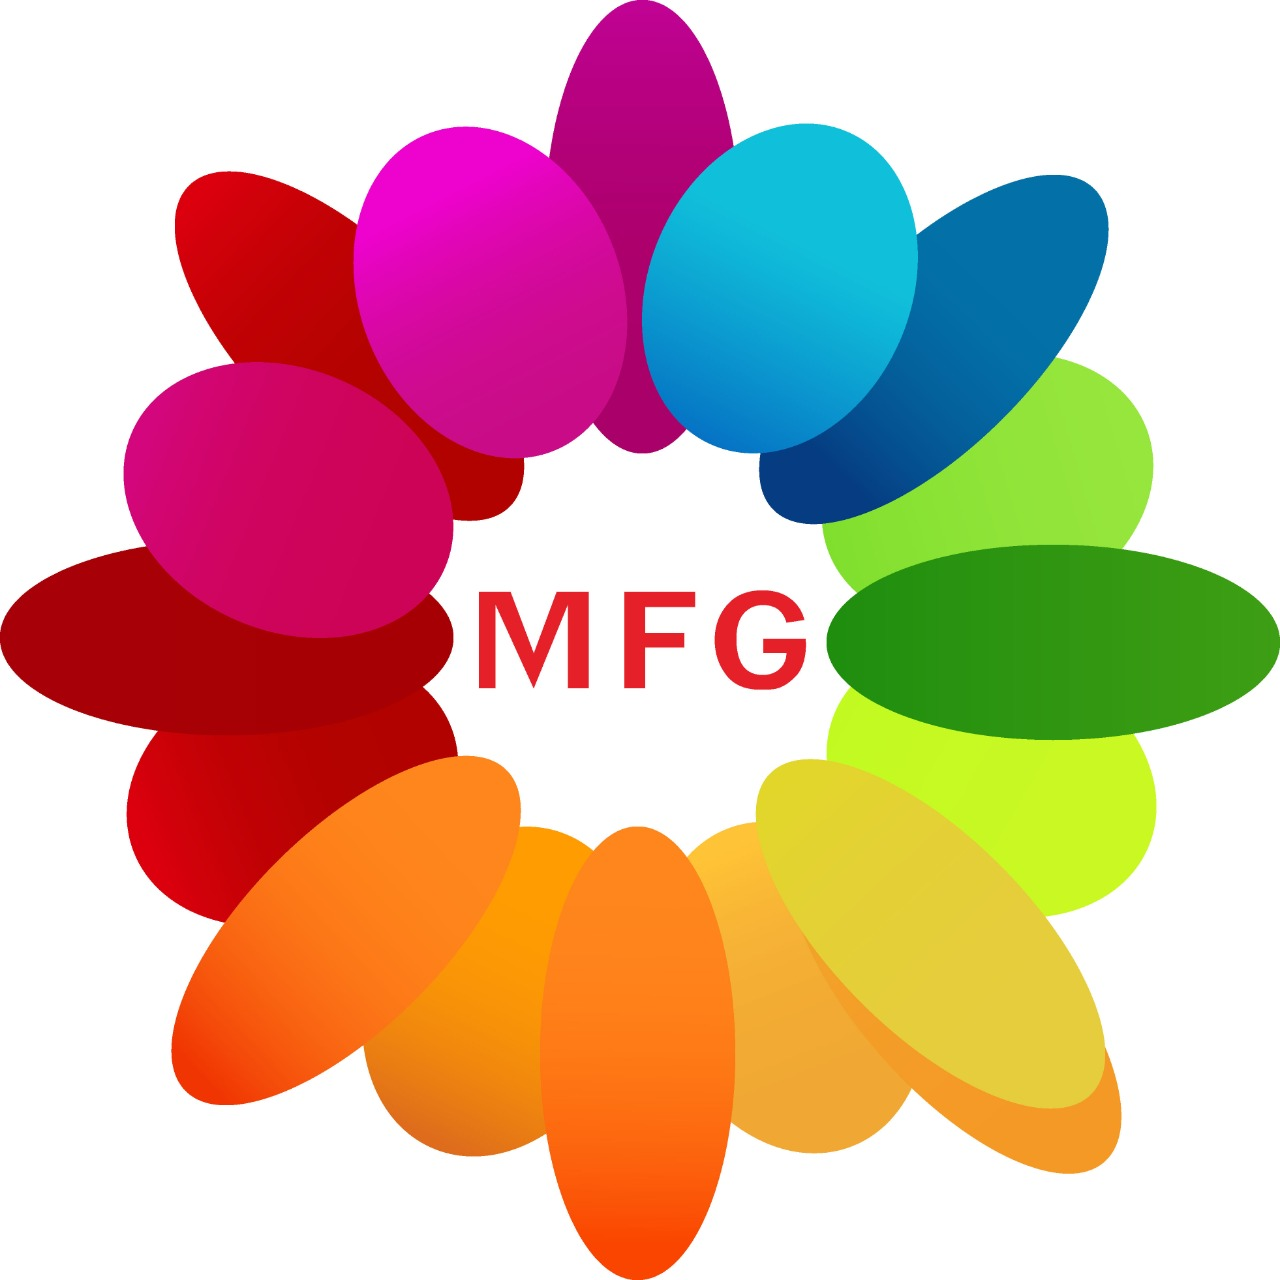 Mix flowers in Glass Vase